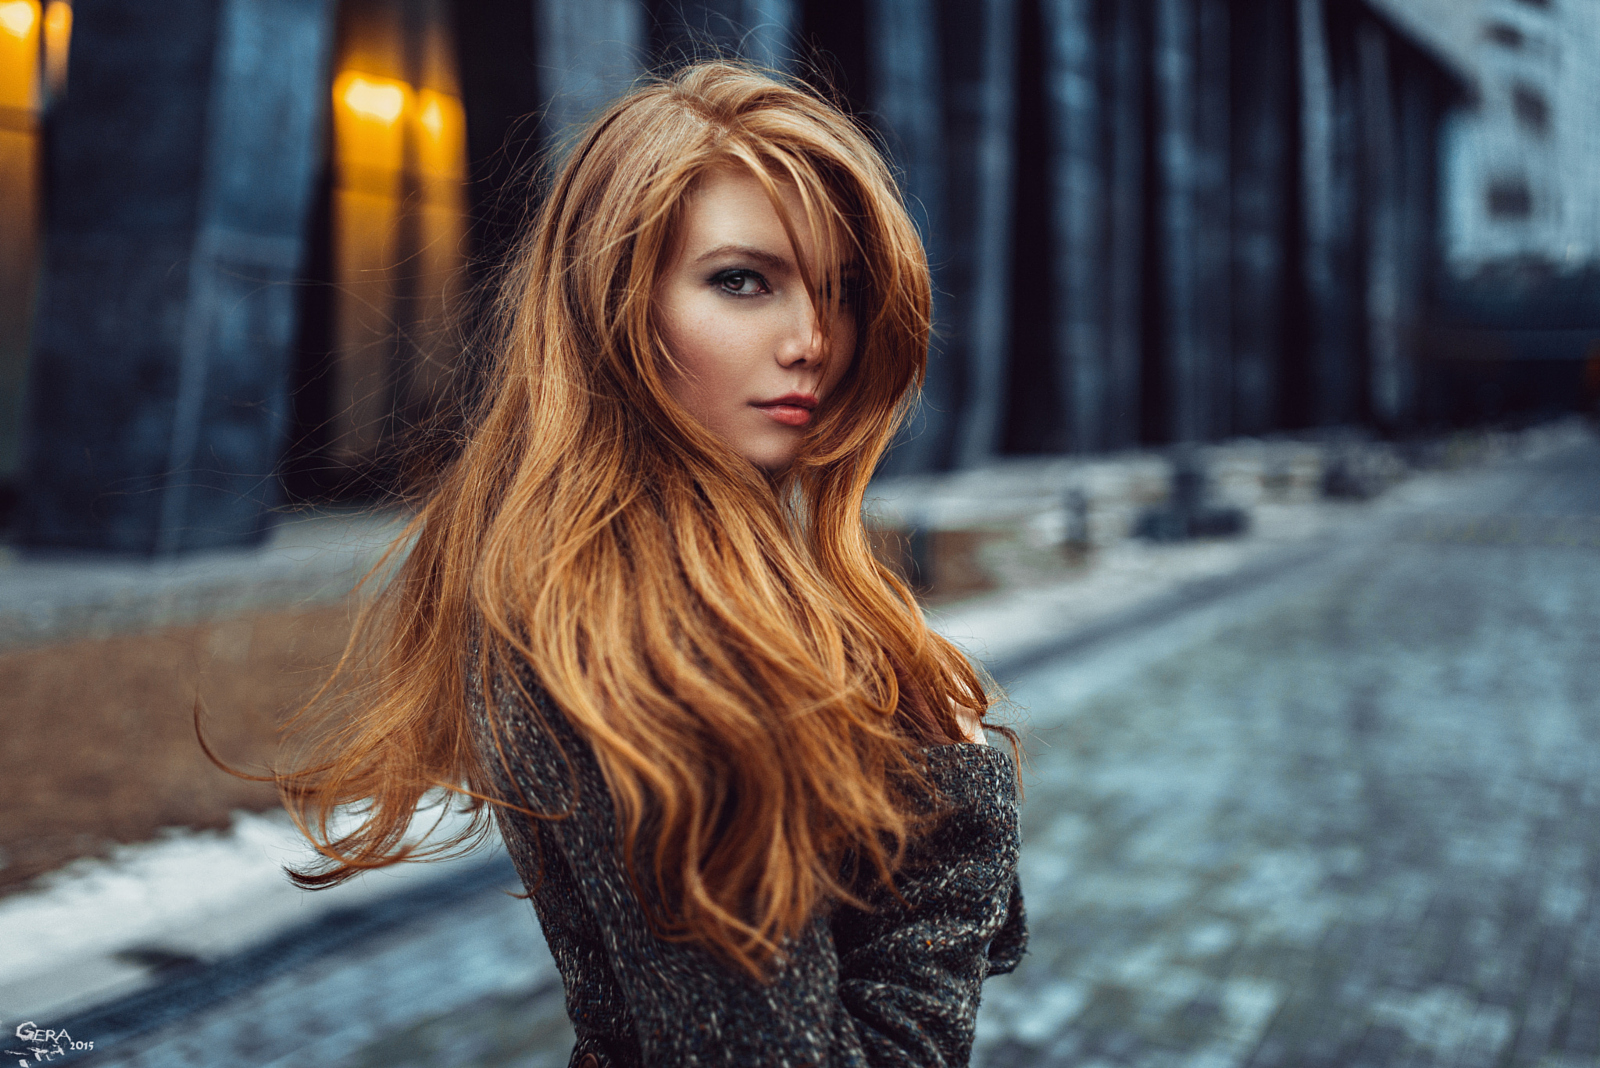 Beauty Inspiring Portrait Photography by Trung Nguyen